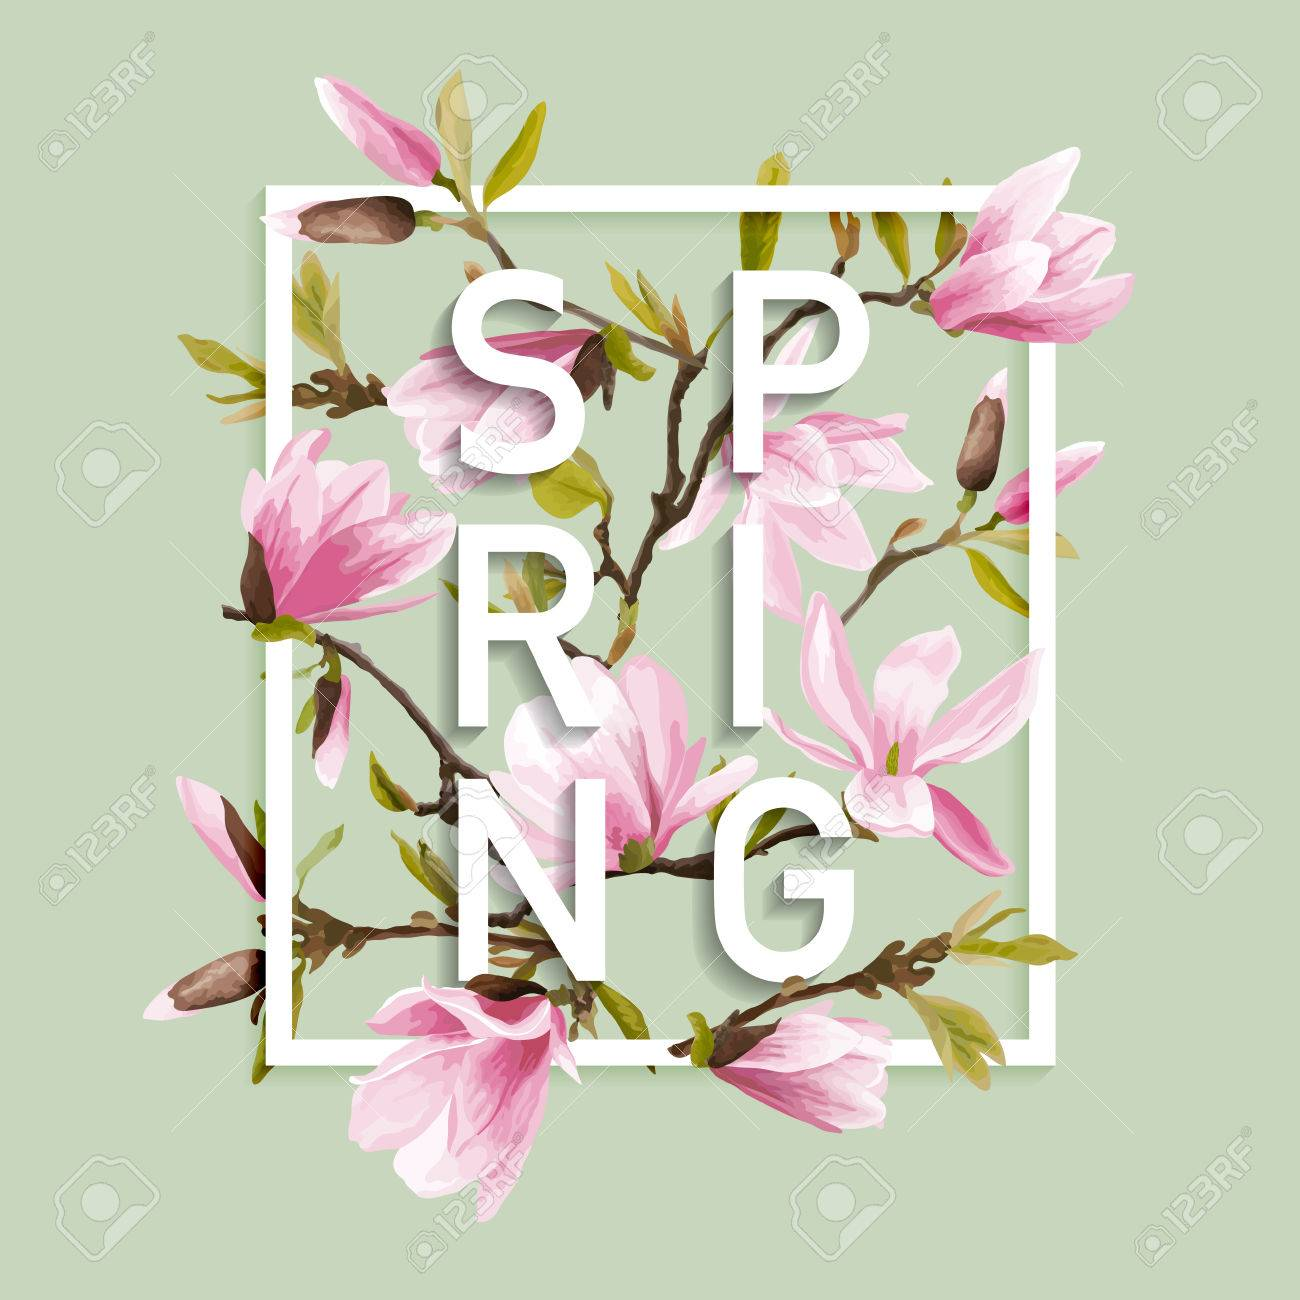 Floral Spring Graphic Design With Magnolia Flowers For T Shirt